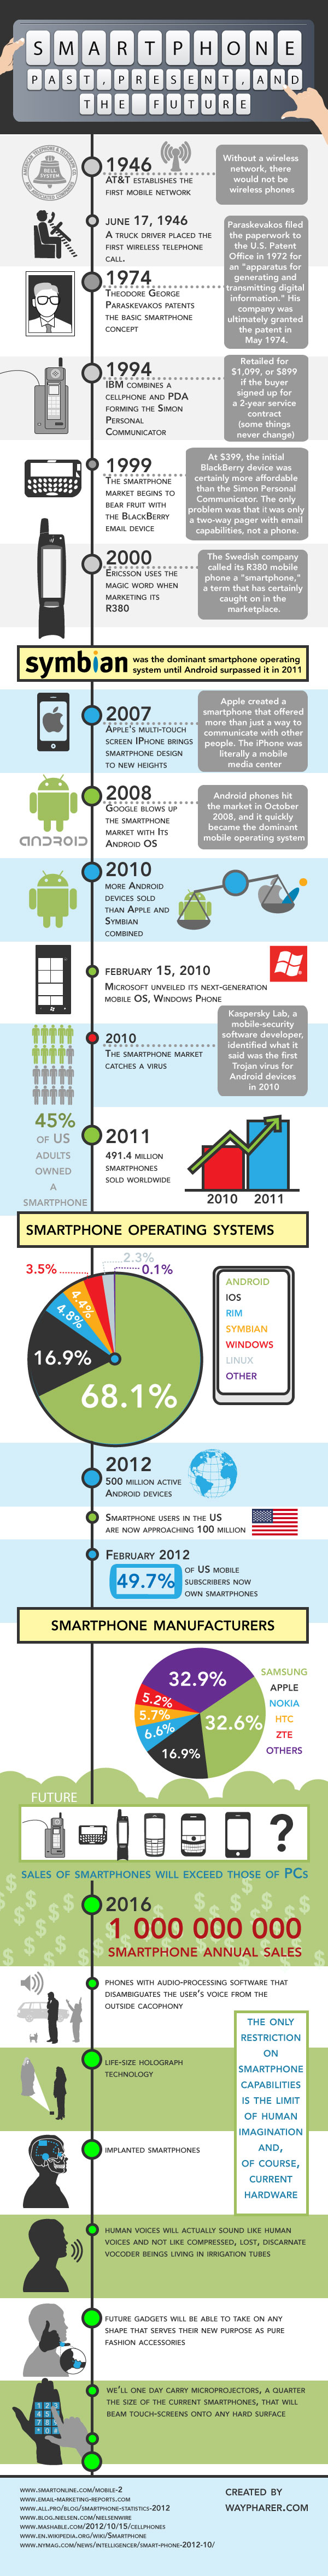 smartphones past present future The past, present, and future of smartphones [infographic]